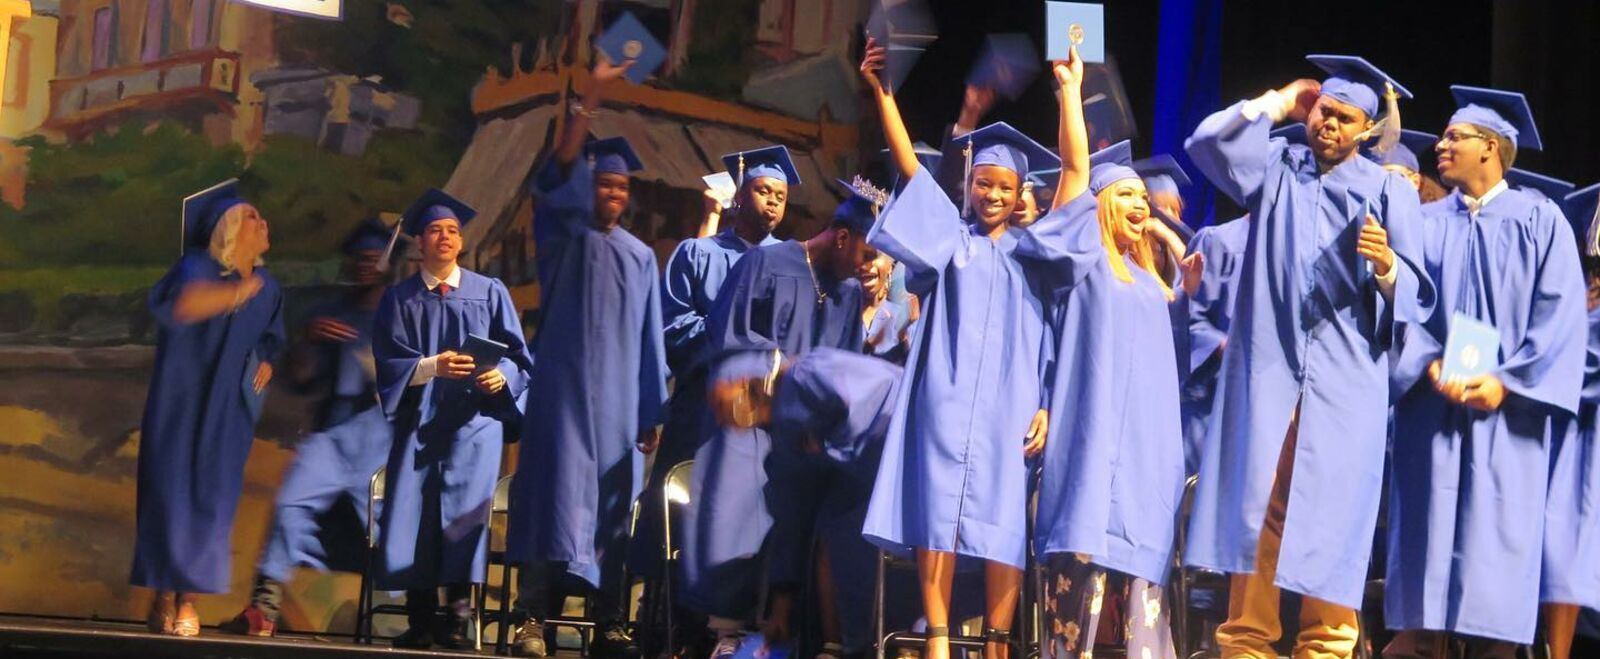 Students raising their hands on stage on graduation day.